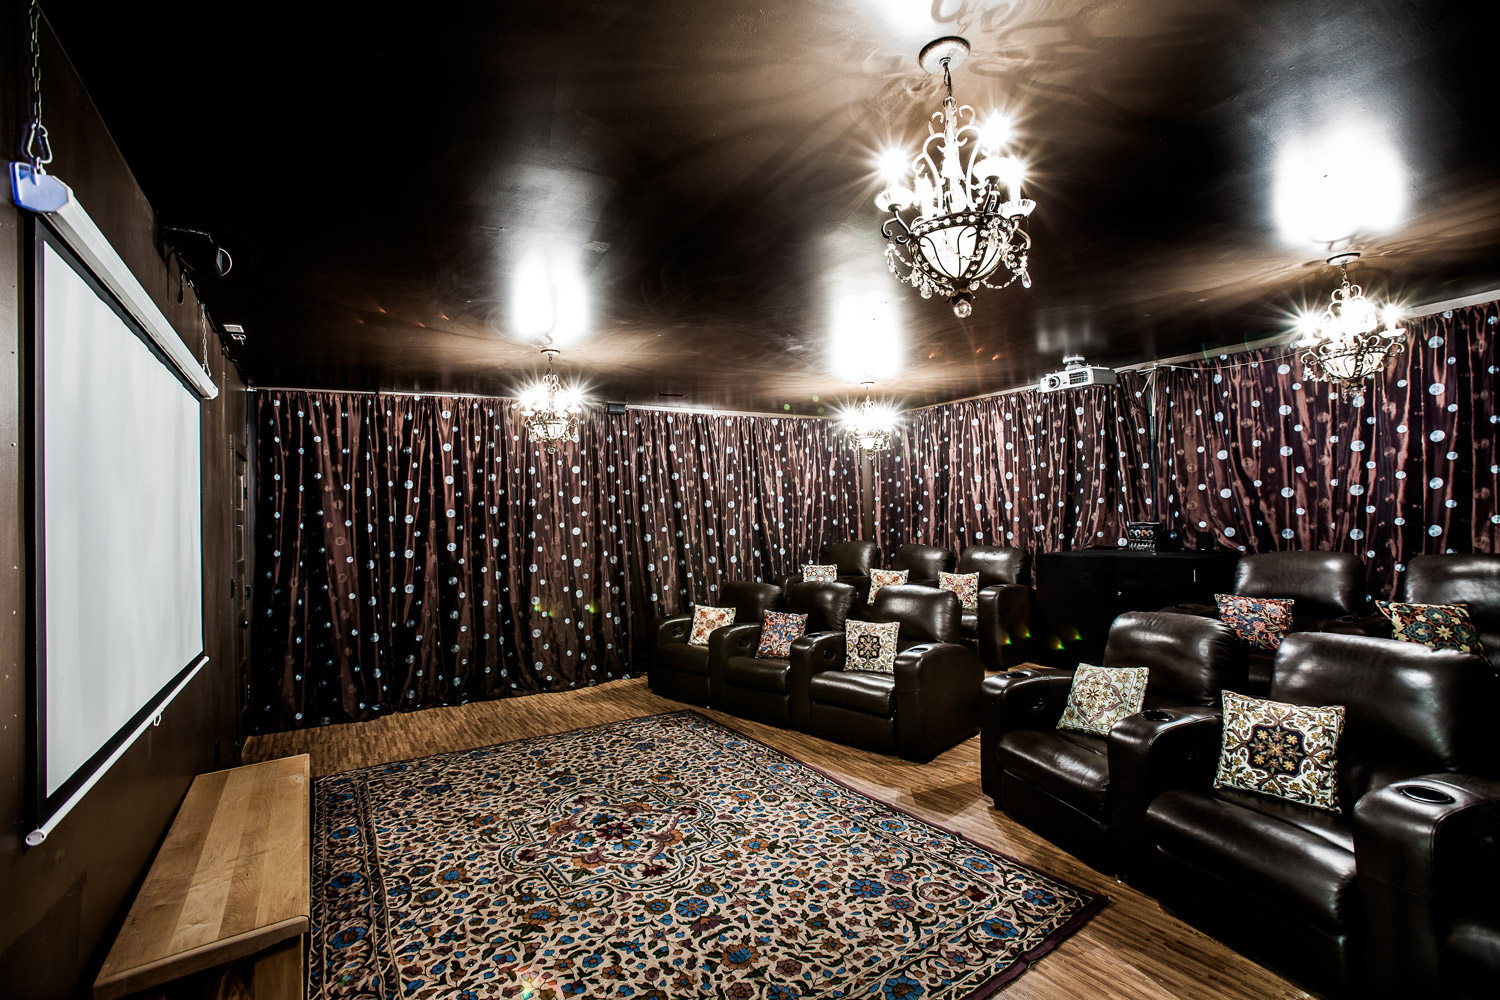 In-home movie theater with reclining leather seats and a surround sound stereo system